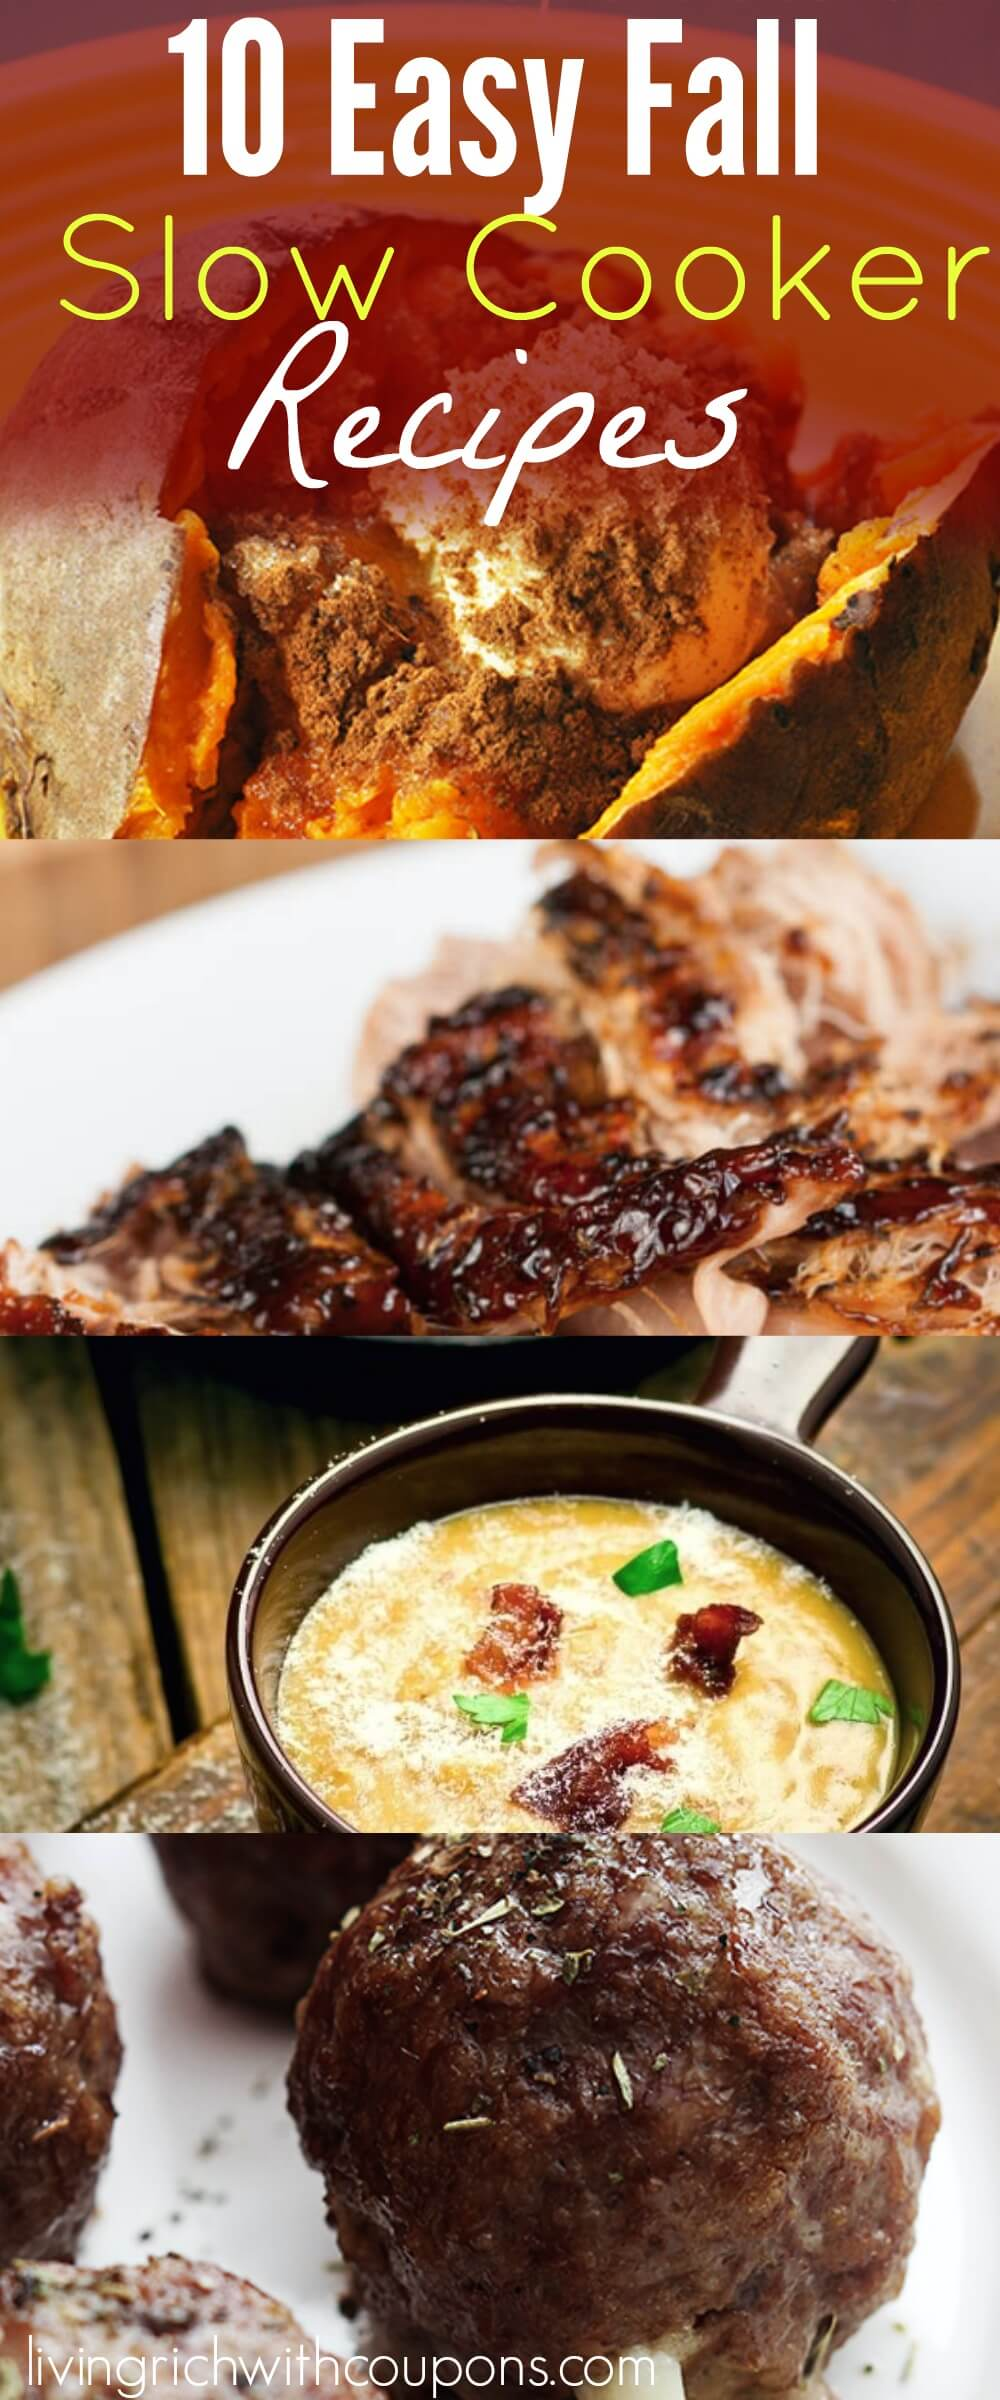 10 easy fall slow cooker recipes 2